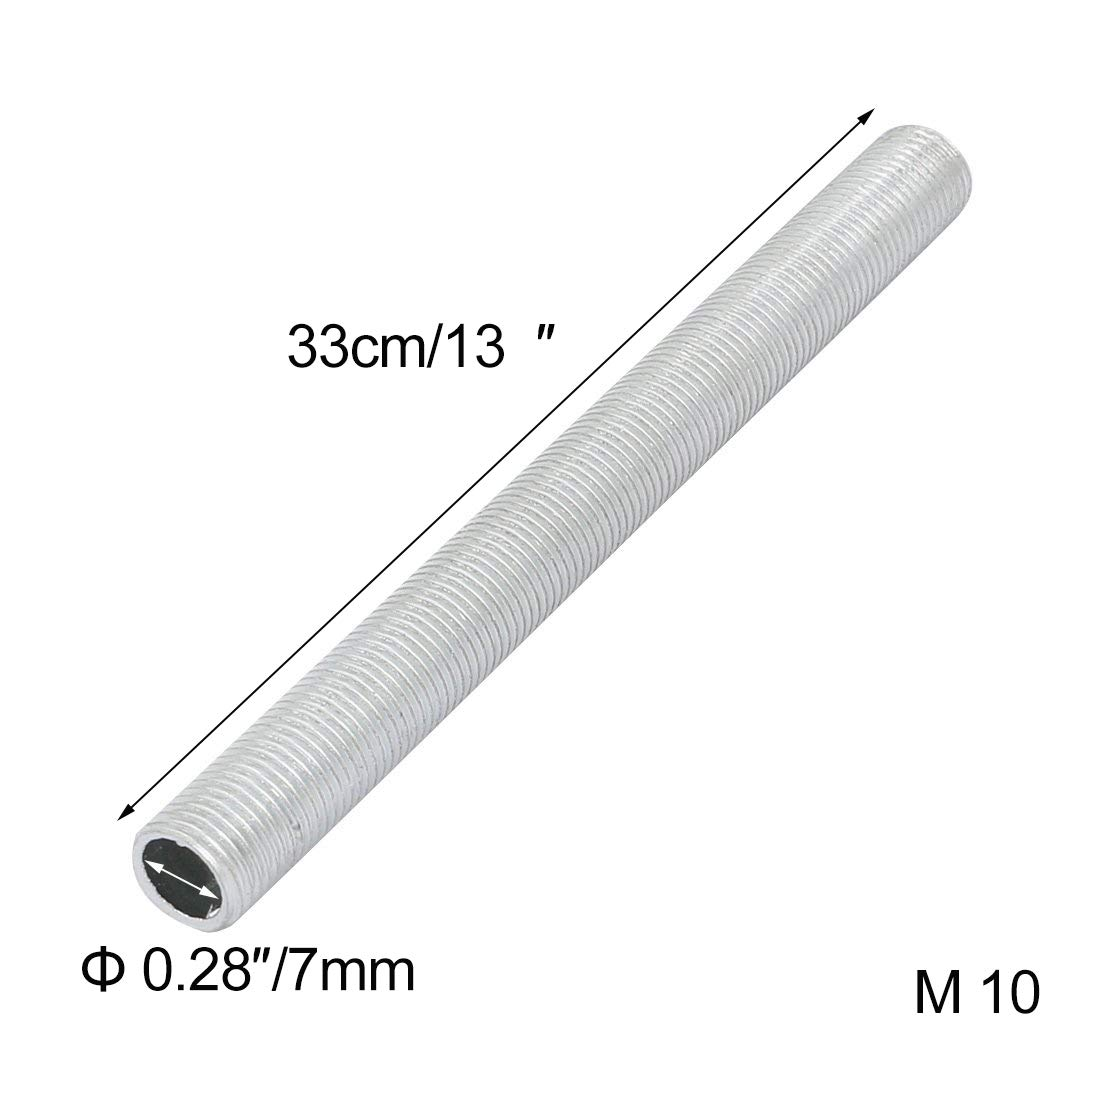 ANYE 5 Pcs M10 Full Threaded Lamp Nipple Straight 13''(L) Pass-Through Pipe Connector DIY PJ0021-33CMx5